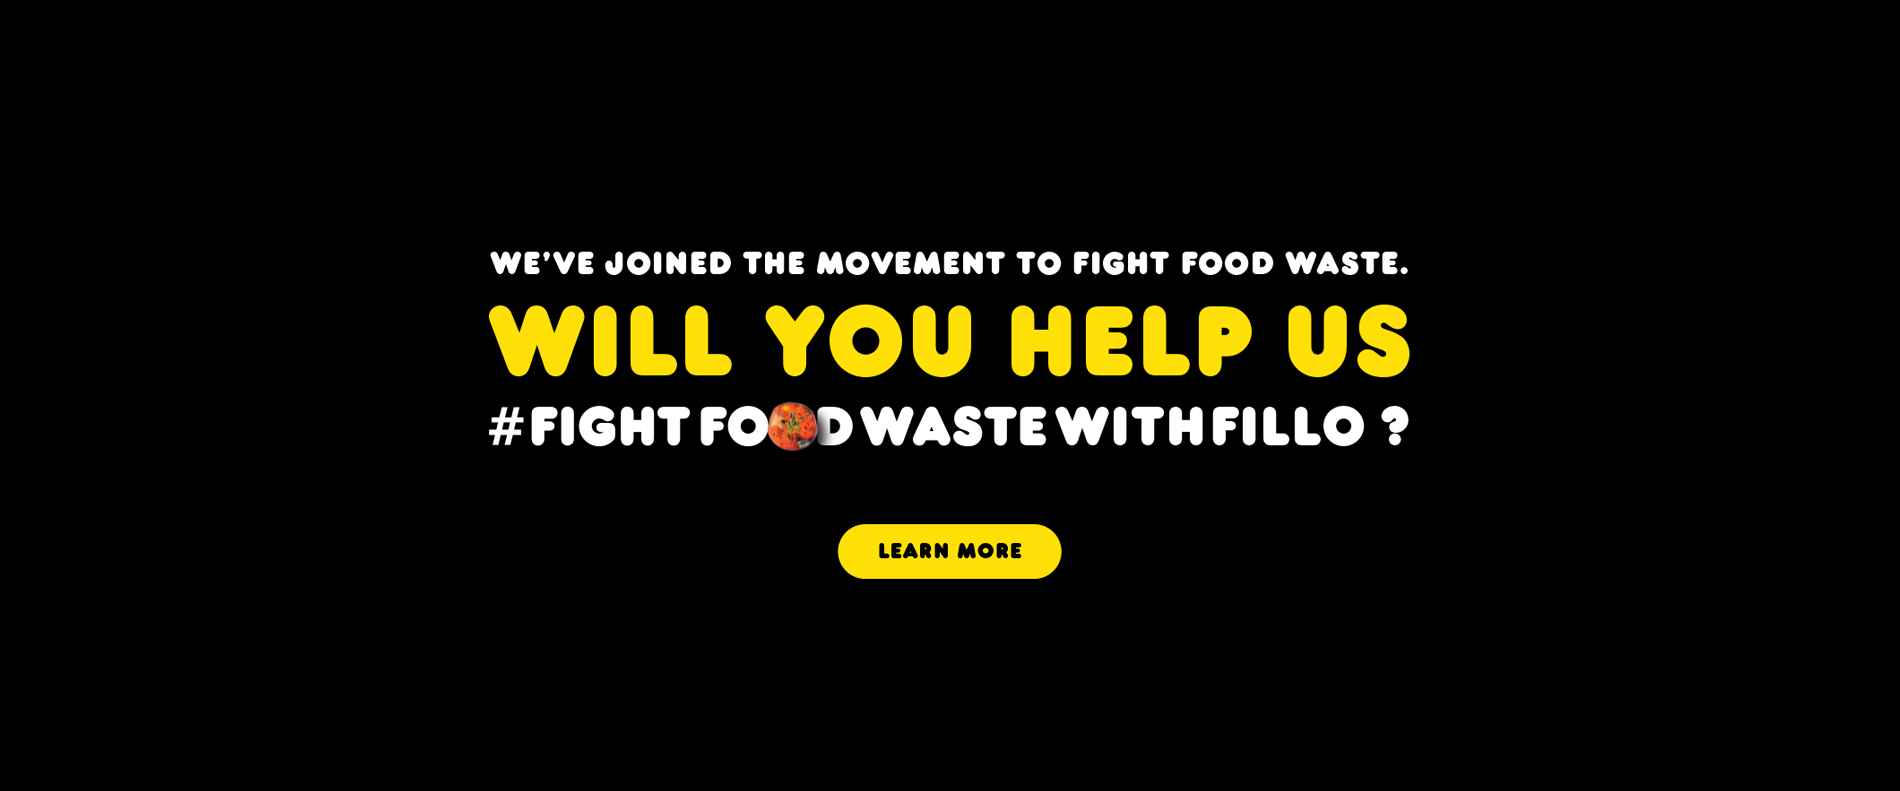 FightFoodWasteGalleryImage_2.jpg